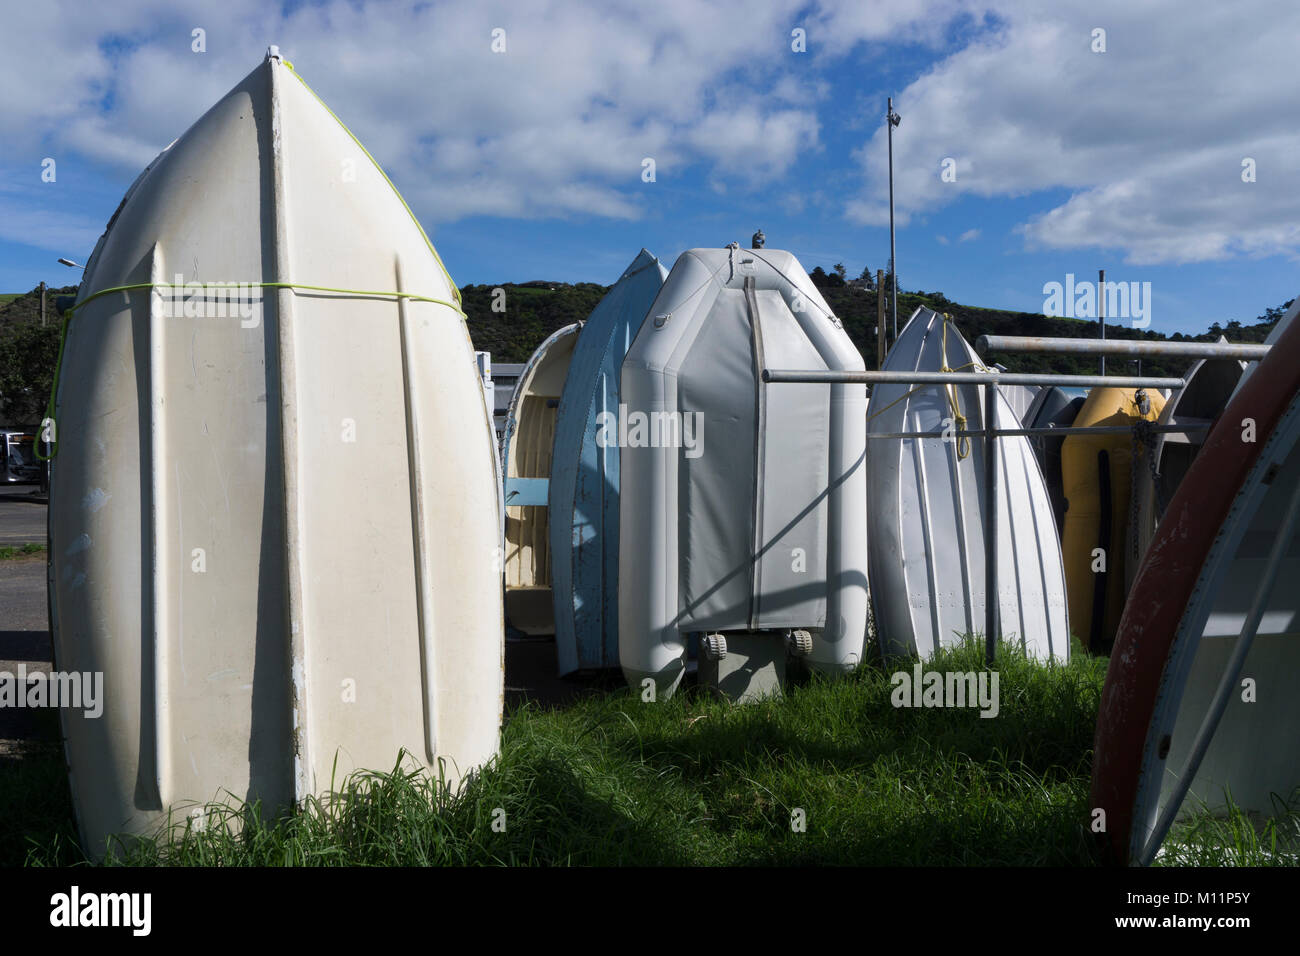 Waiheke Island, New Zealand. Dinghies at Matiatia Bay - Stock Image